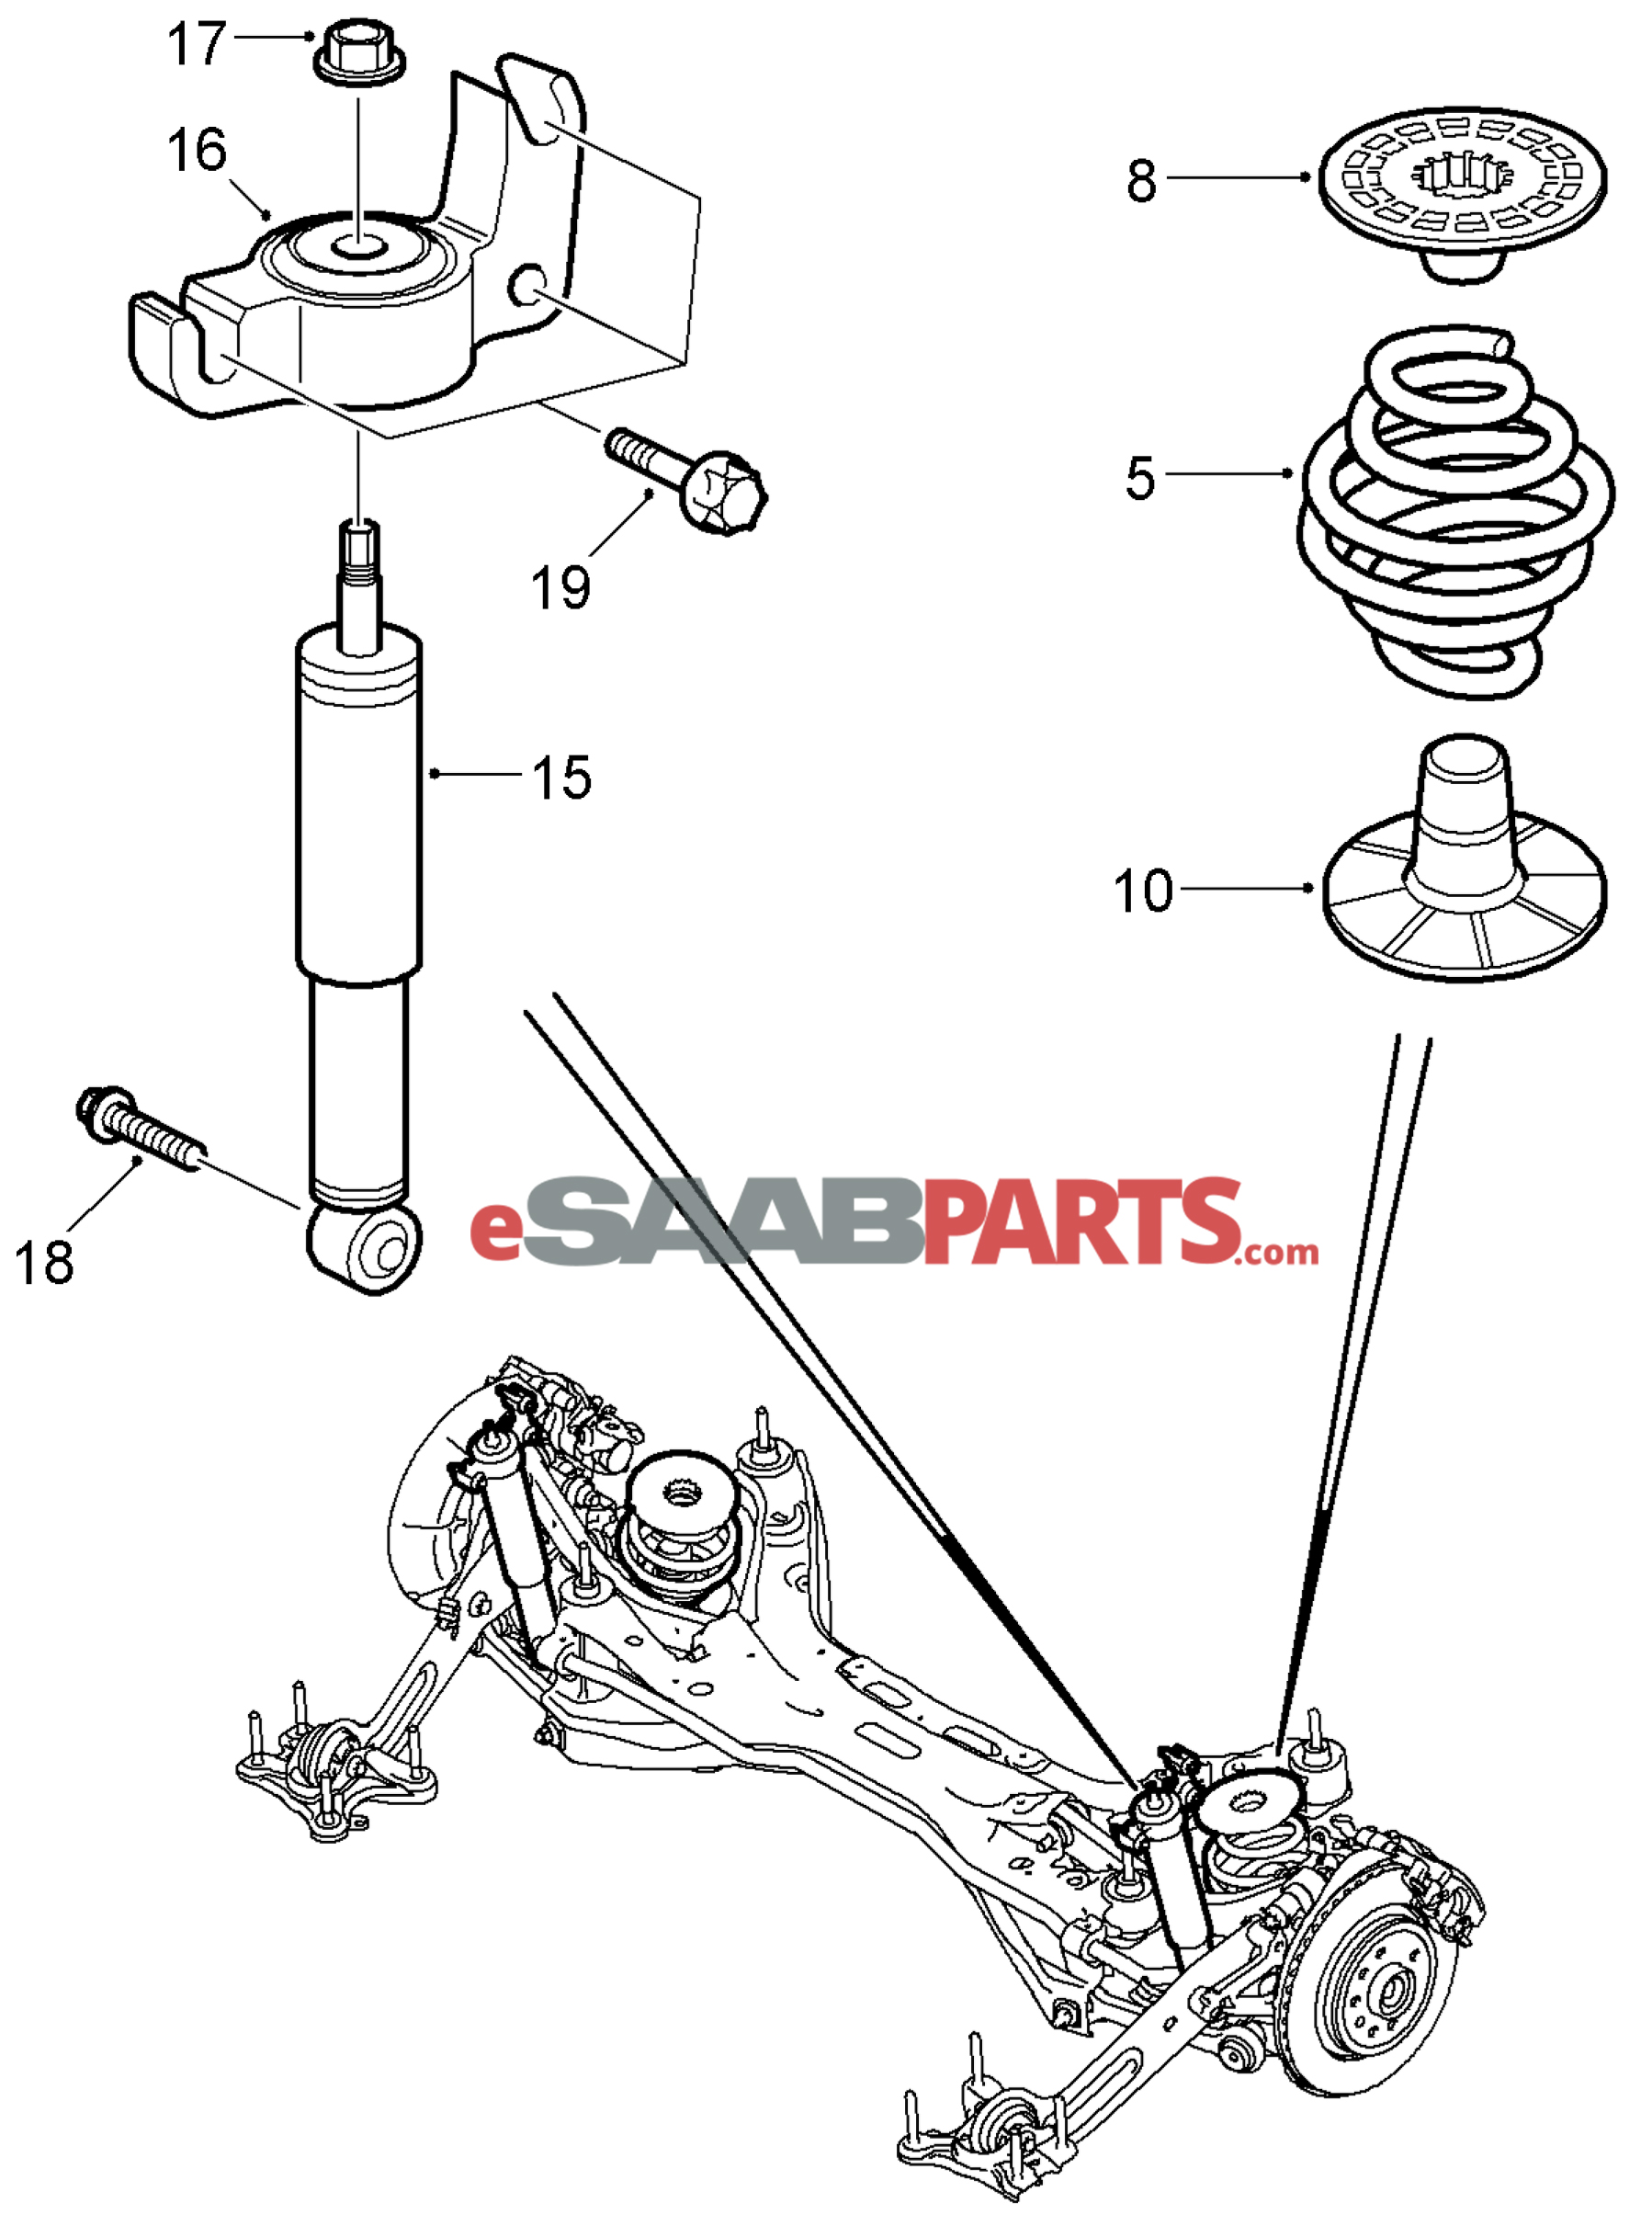 84 saab 900 se engine diagram